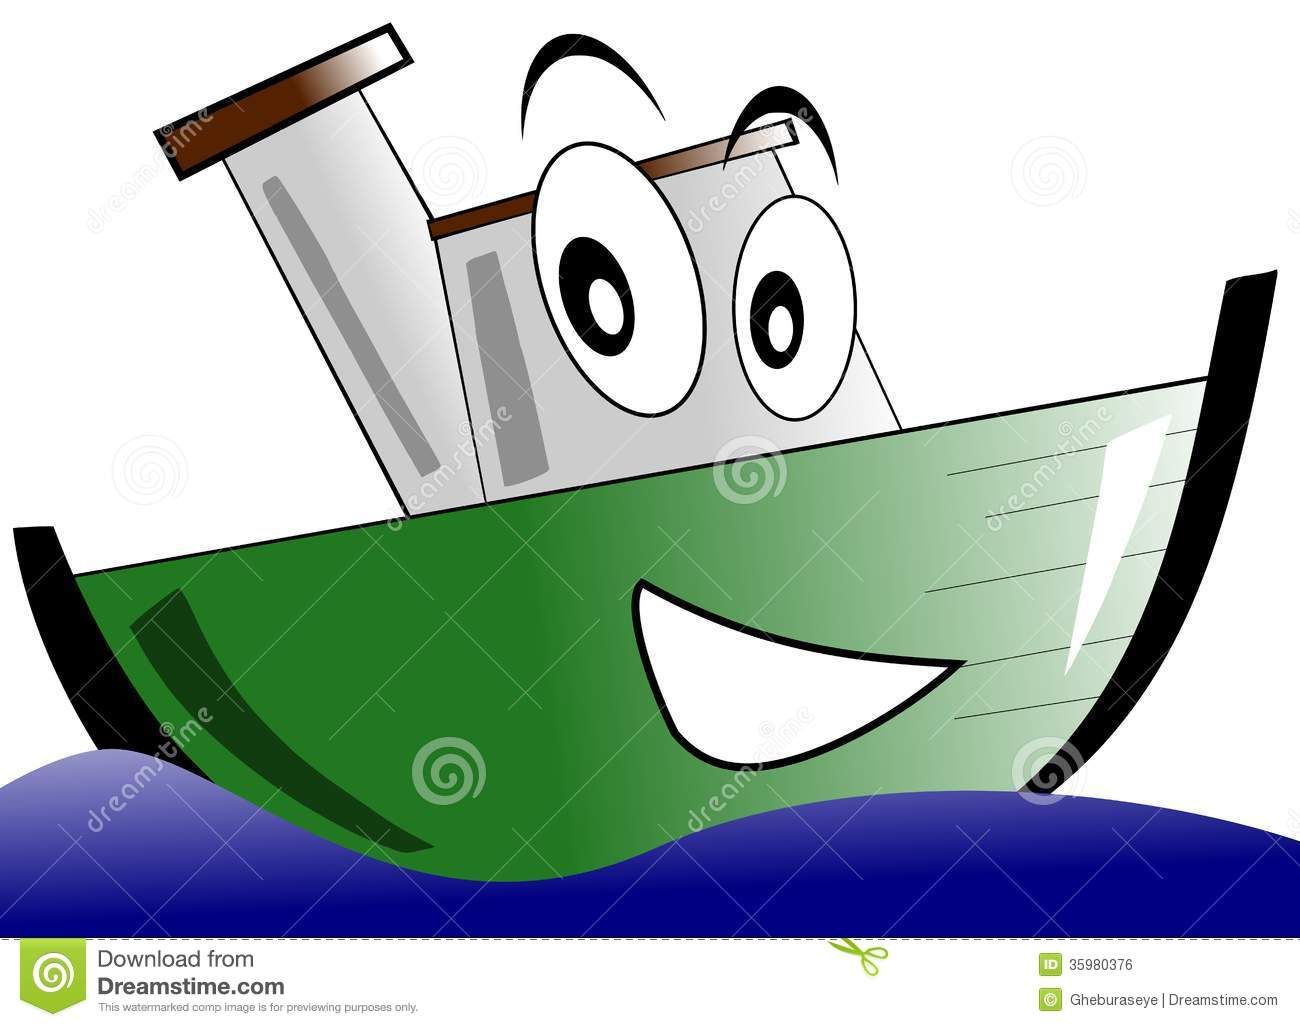 Puma Launches Mar Mostro Sailing Vessel Ahead Of Volvo Ocean in addition biyoart further What Does The Times Of India Logo Stand For further Timeline With Business Icons Process Flow Flat Powerpoint Design as well The Best Kayak Guide. on sailing graphic design